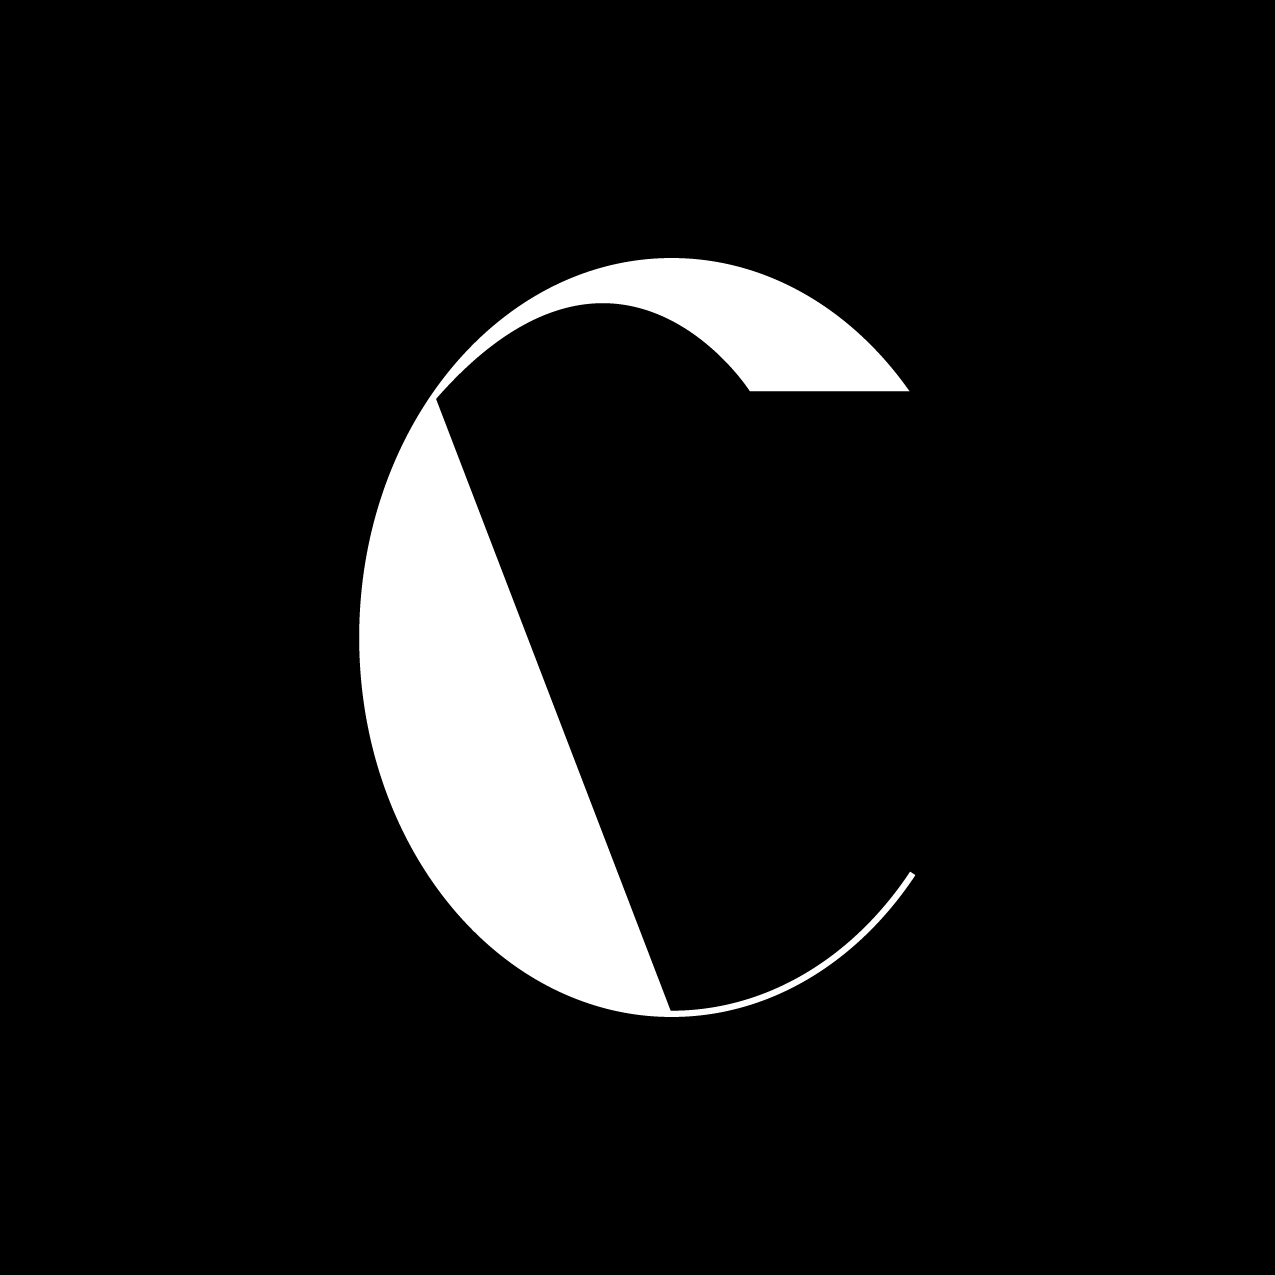 Letter C8 design by Furia